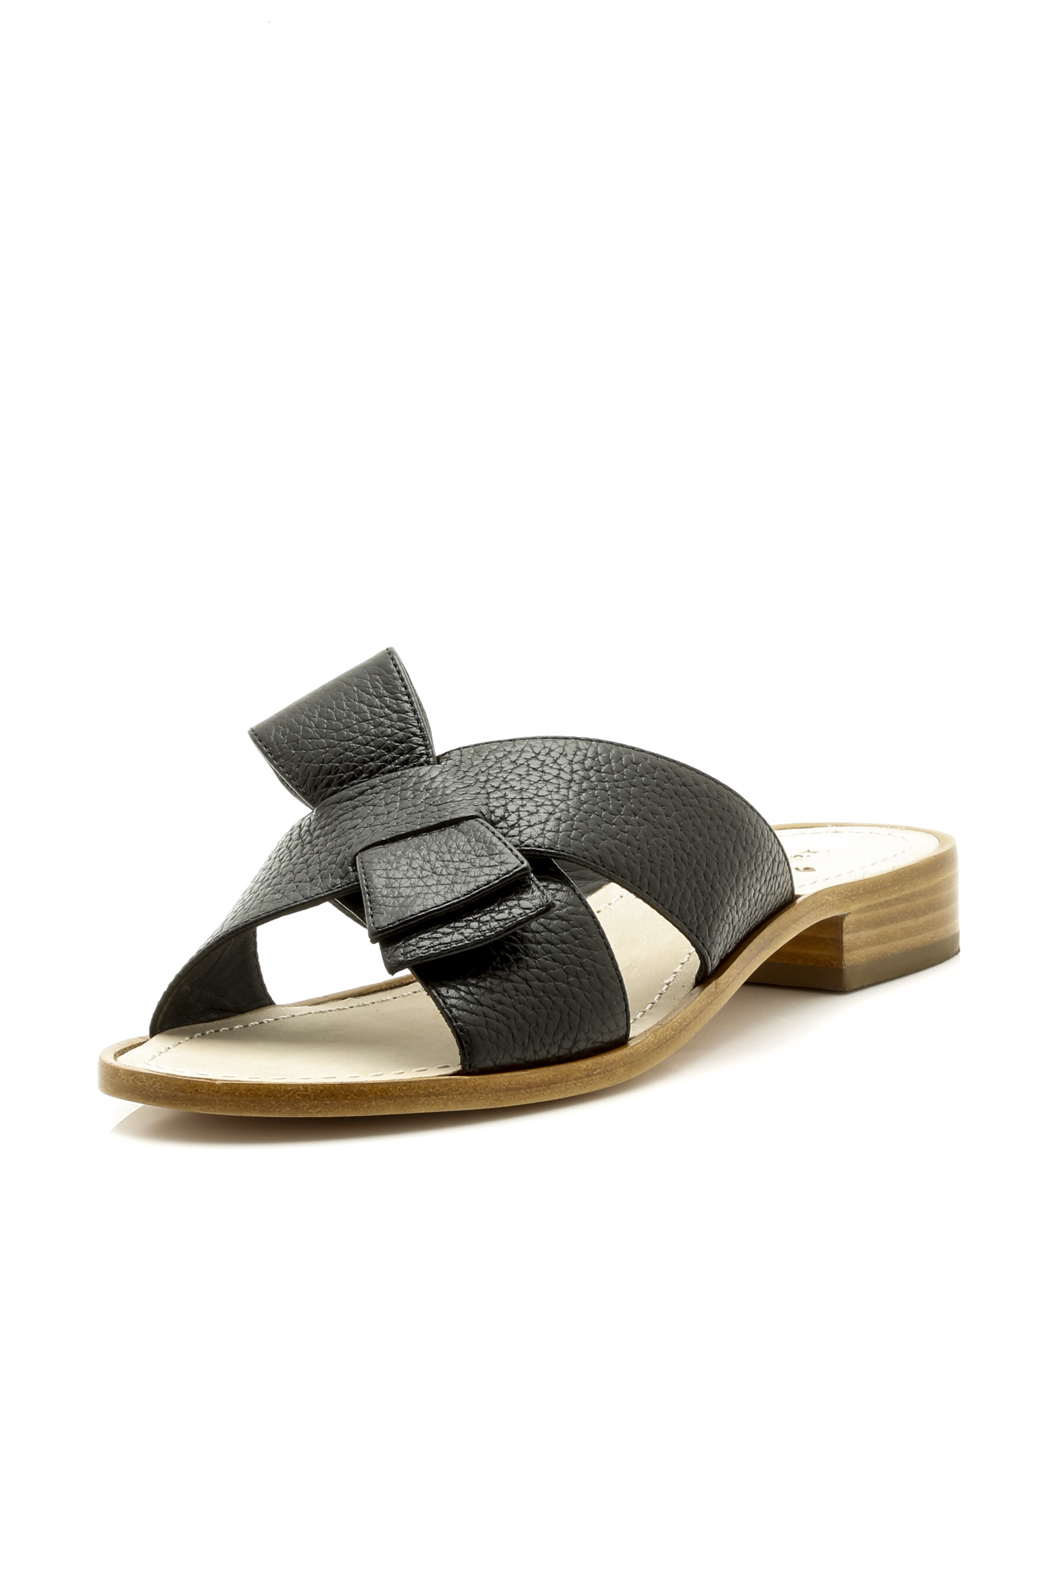 Kate Spade New York Crossover Leather Sandal From Boston